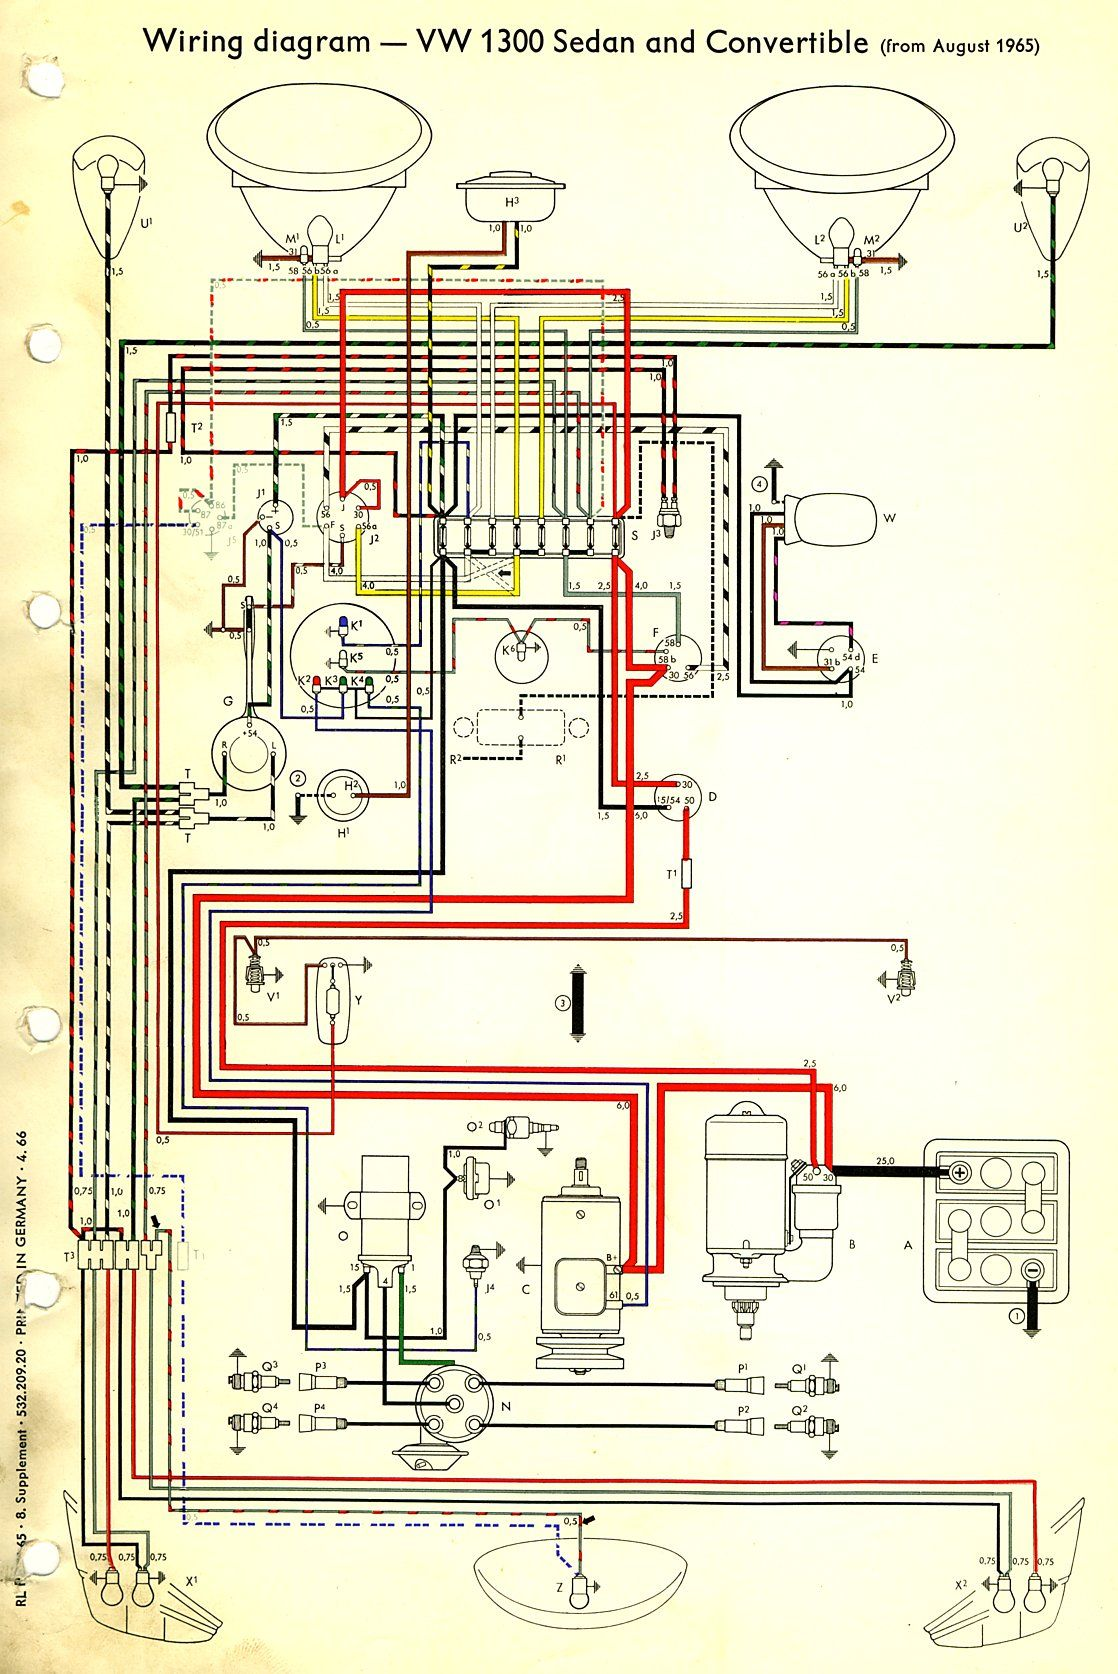 1963 Vw Van Wiring Diagram | Wiring Diagram Karmann Ghia Wiring Diagram on eurovan wiring diagram, type 181 wiring diagram, volvo wiring diagram, audi wiring diagram, van wiring diagram, mitsubishi wiring diagram, corvette wiring diagram, dodge wiring diagram, type 3 wiring diagram, bug wiring diagram, chrysler wiring diagram, vw wiring diagram, chevrolet wiring diagram, jeep wiring diagram, toyota wiring diagram, acura wiring diagram, mgb wiring diagram, lincoln wiring diagram, mustang wiring diagram, austin healey wiring diagram,